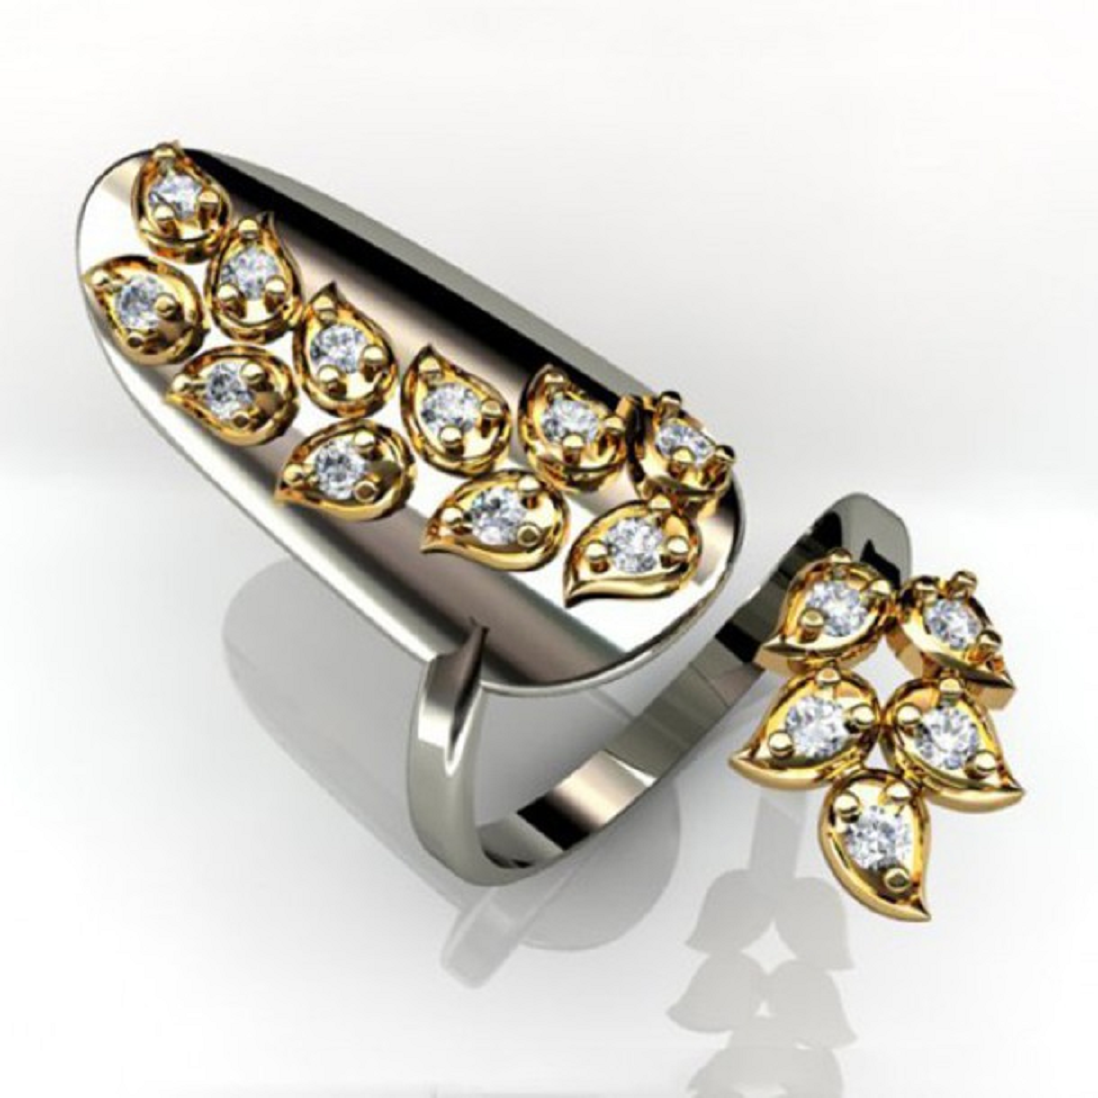 Nail ring bling Glittering Silver Metalic Full Nail Cap Ring with Gold Design and Rhinestones